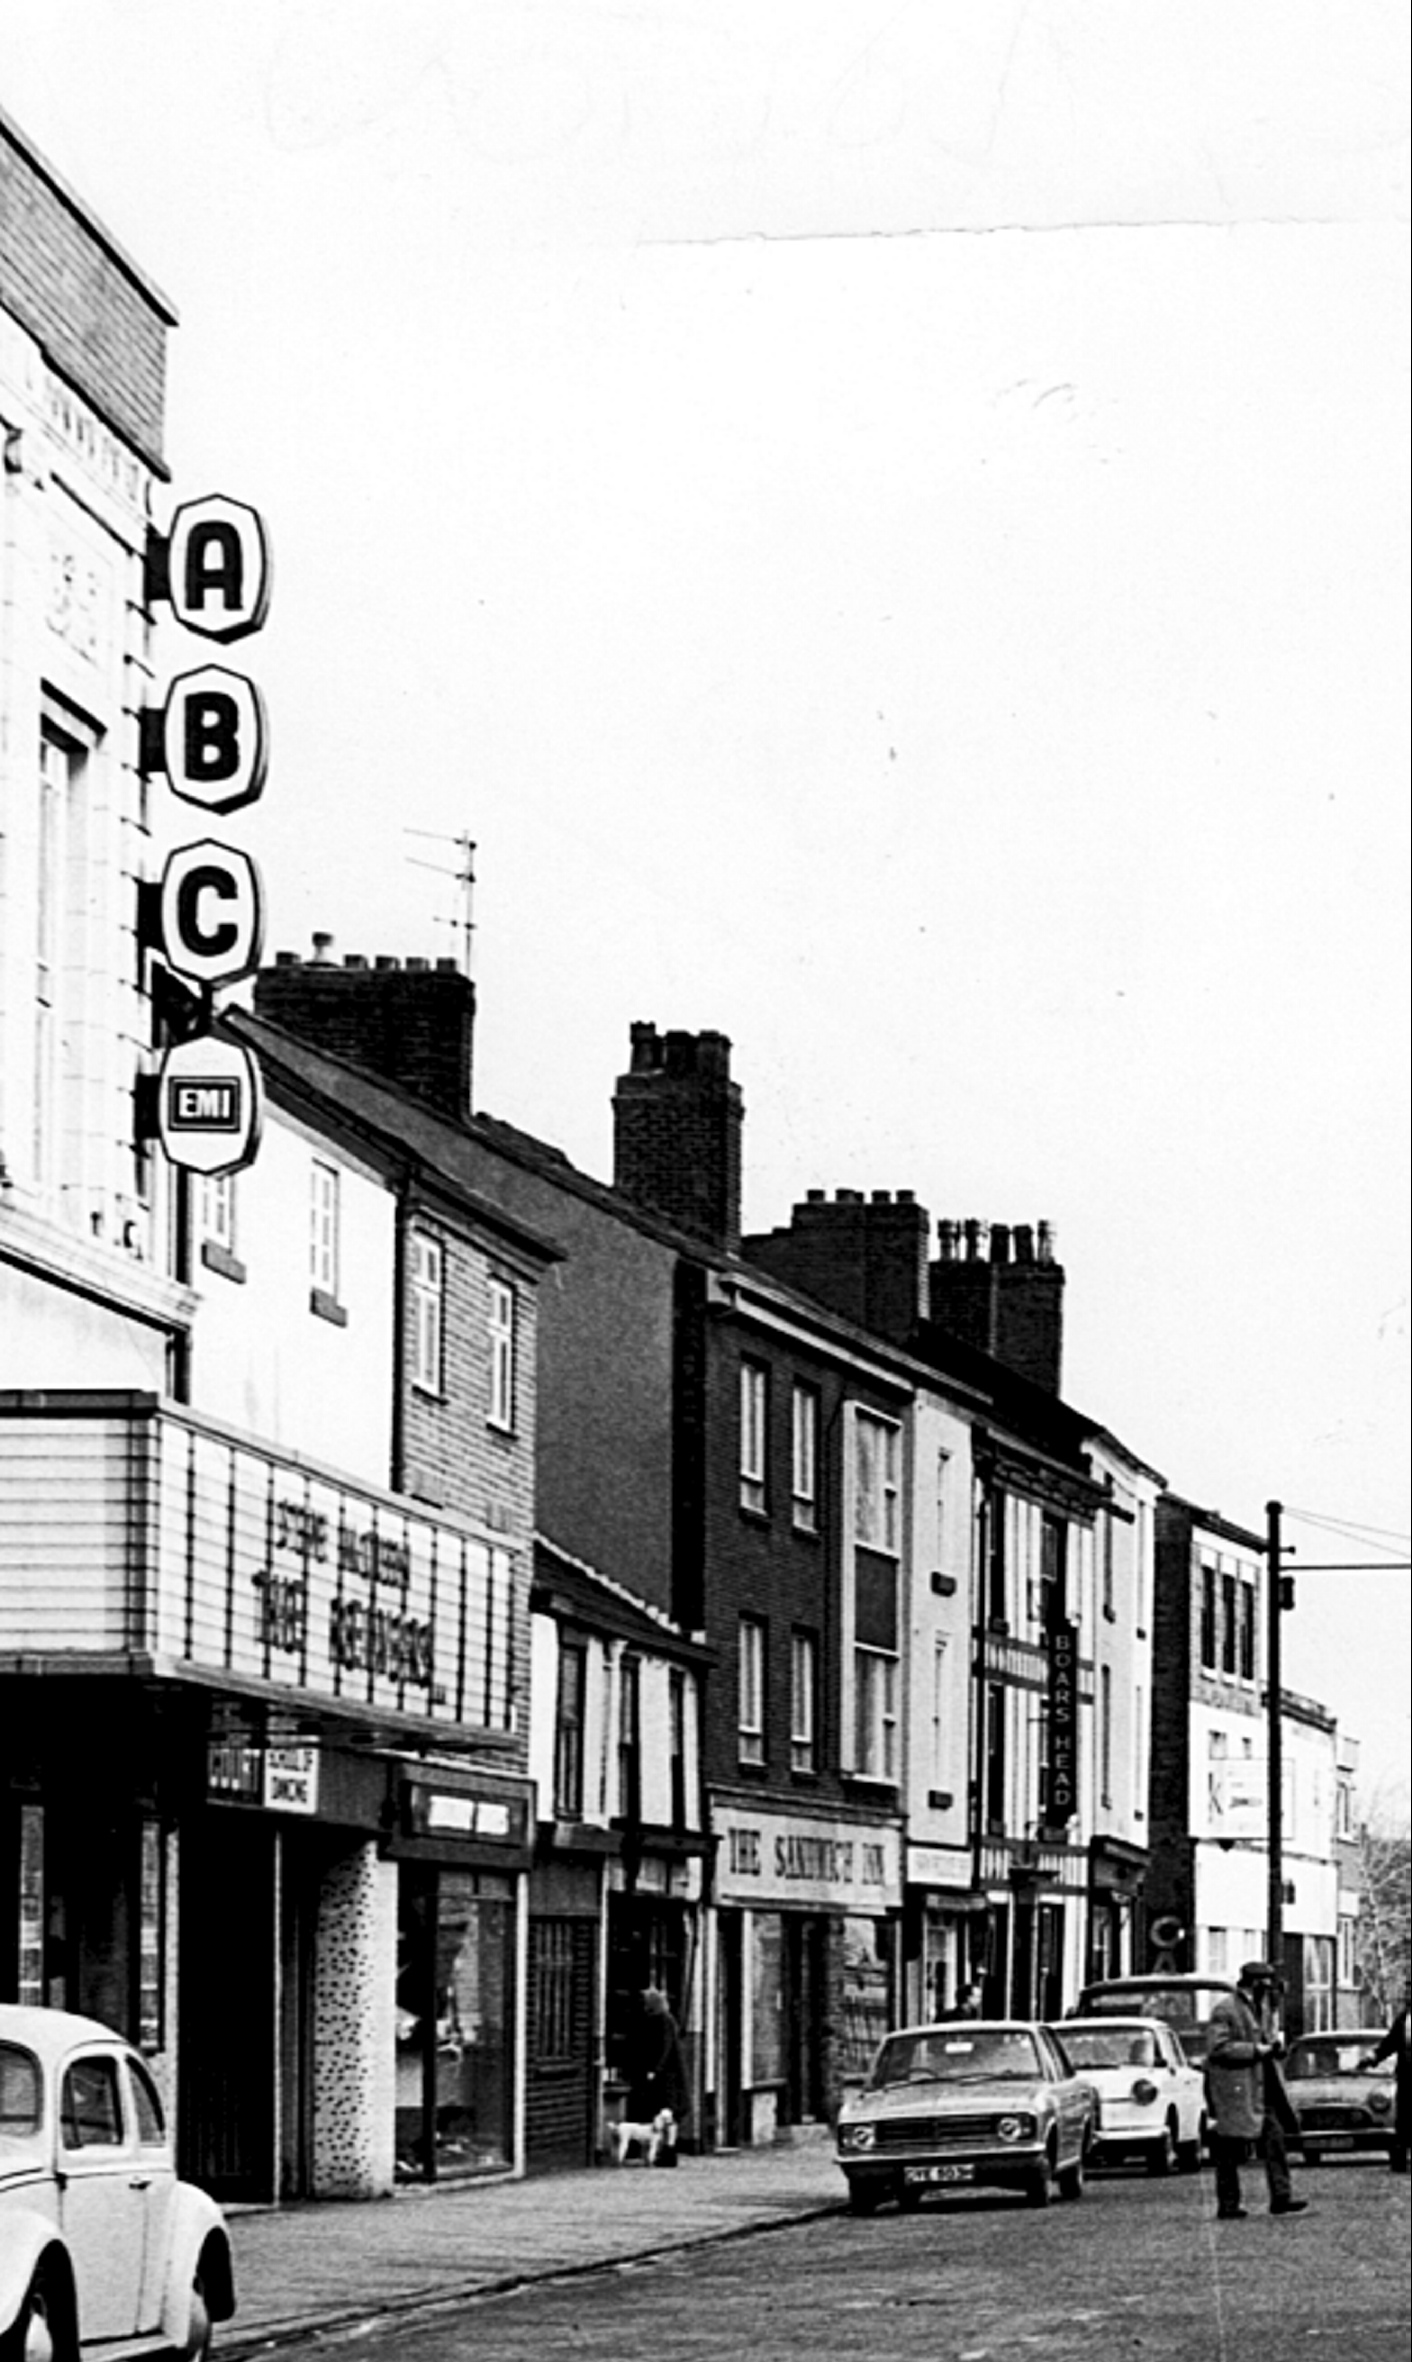 The Bolton News: The ABC in Churchgate in 1970